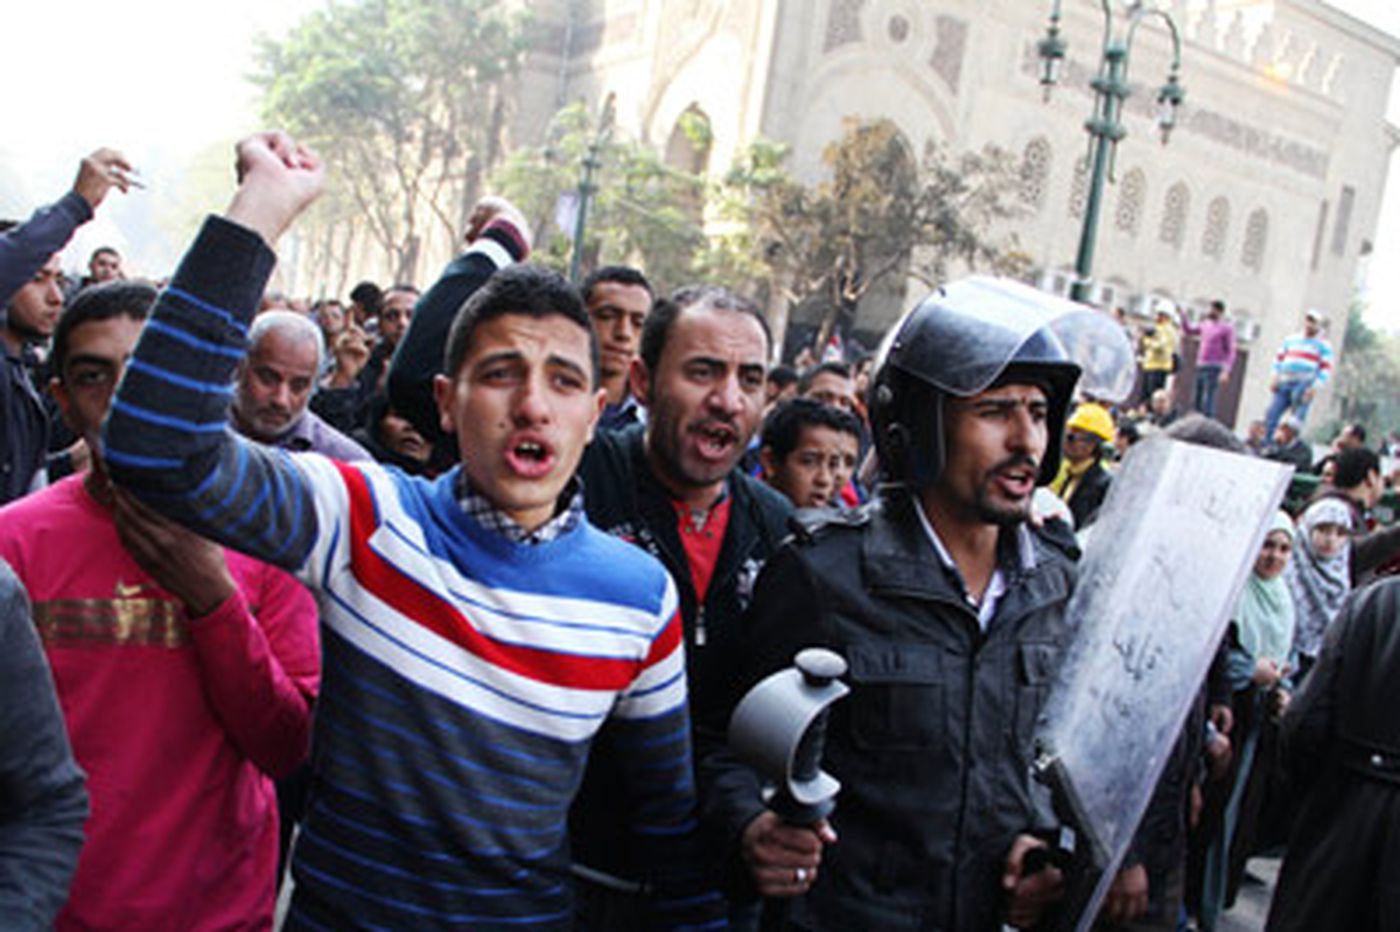 Egyptian military defends crackdown on protesters